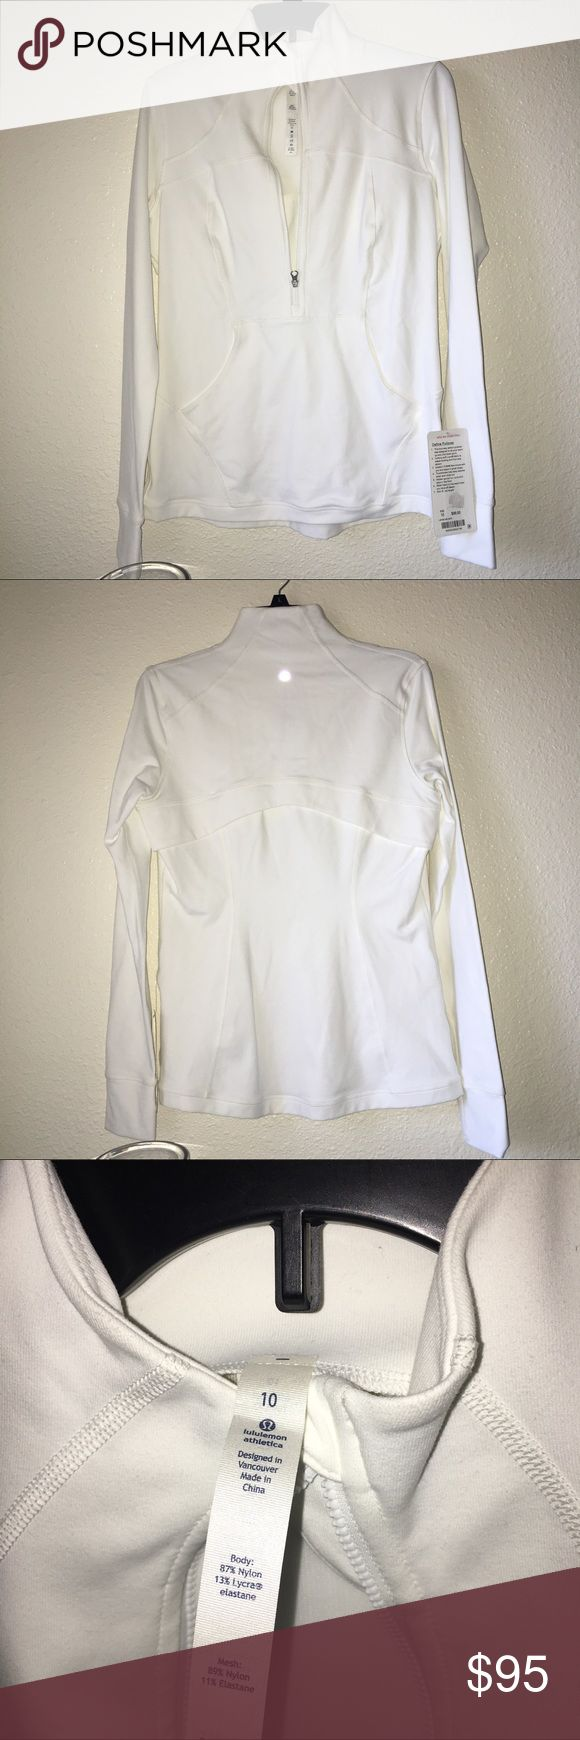 Lululemon Athletica White Define Pullover NWT.  Only flaw is it has light stains on both cuffs at fold.  Just needs to be washed. I got this has a gift and never wore it cause it's white and was always afraid I would get it dirty.  Size confirmed.  PRICE IS FIRM.  NO TRADES!! lululemon athletica Jackets & Coats